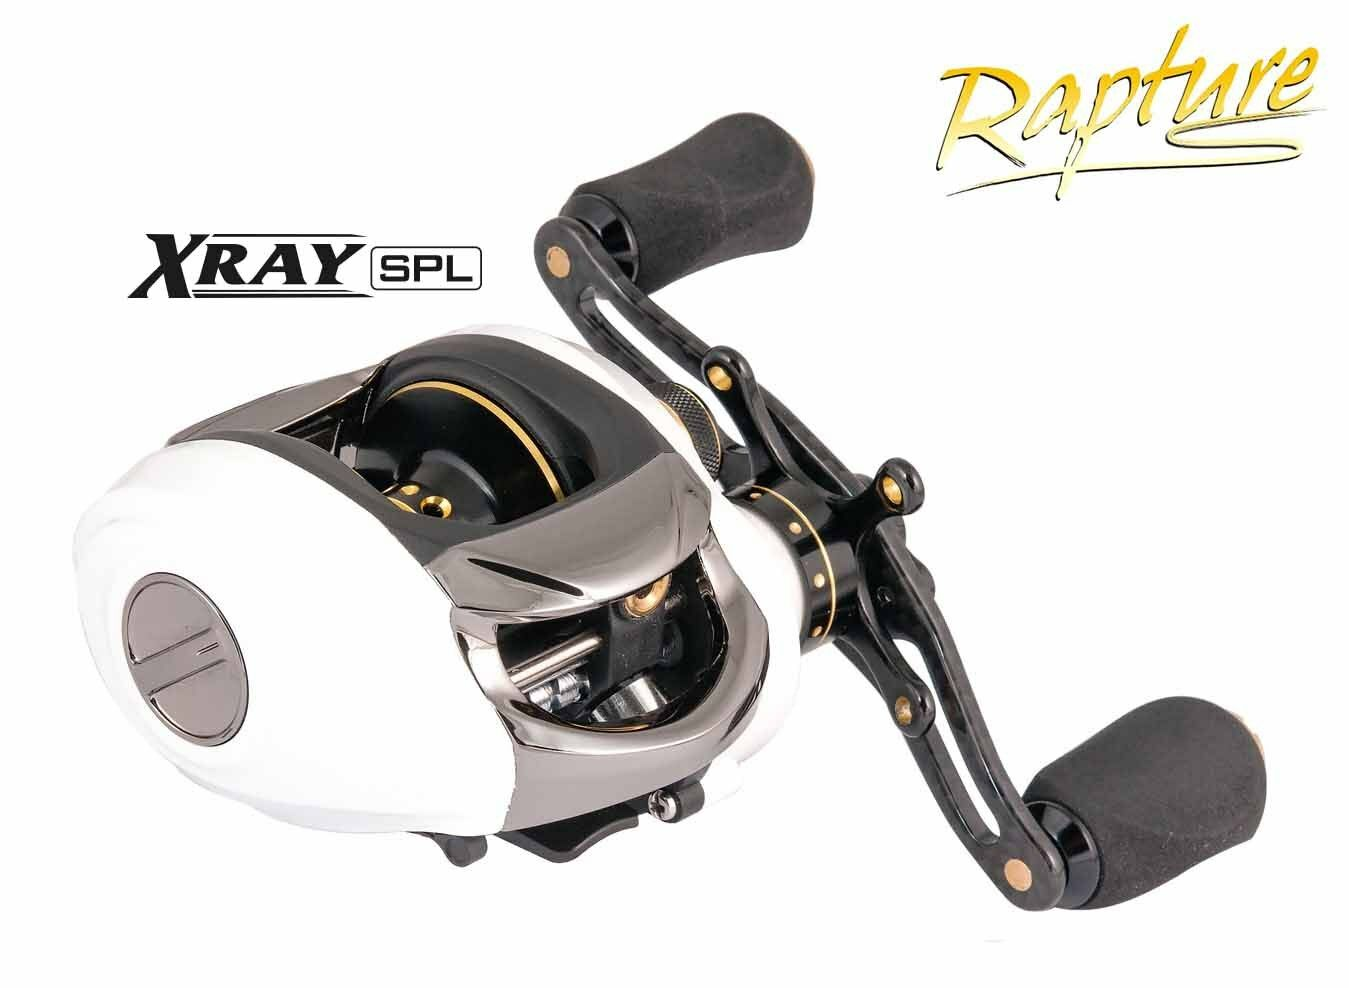 03185700 Mulinello Rapture X-Ray SPL 10 Bb Bait Casting Pesca Spinning Spinning Pesca RN 1a741c